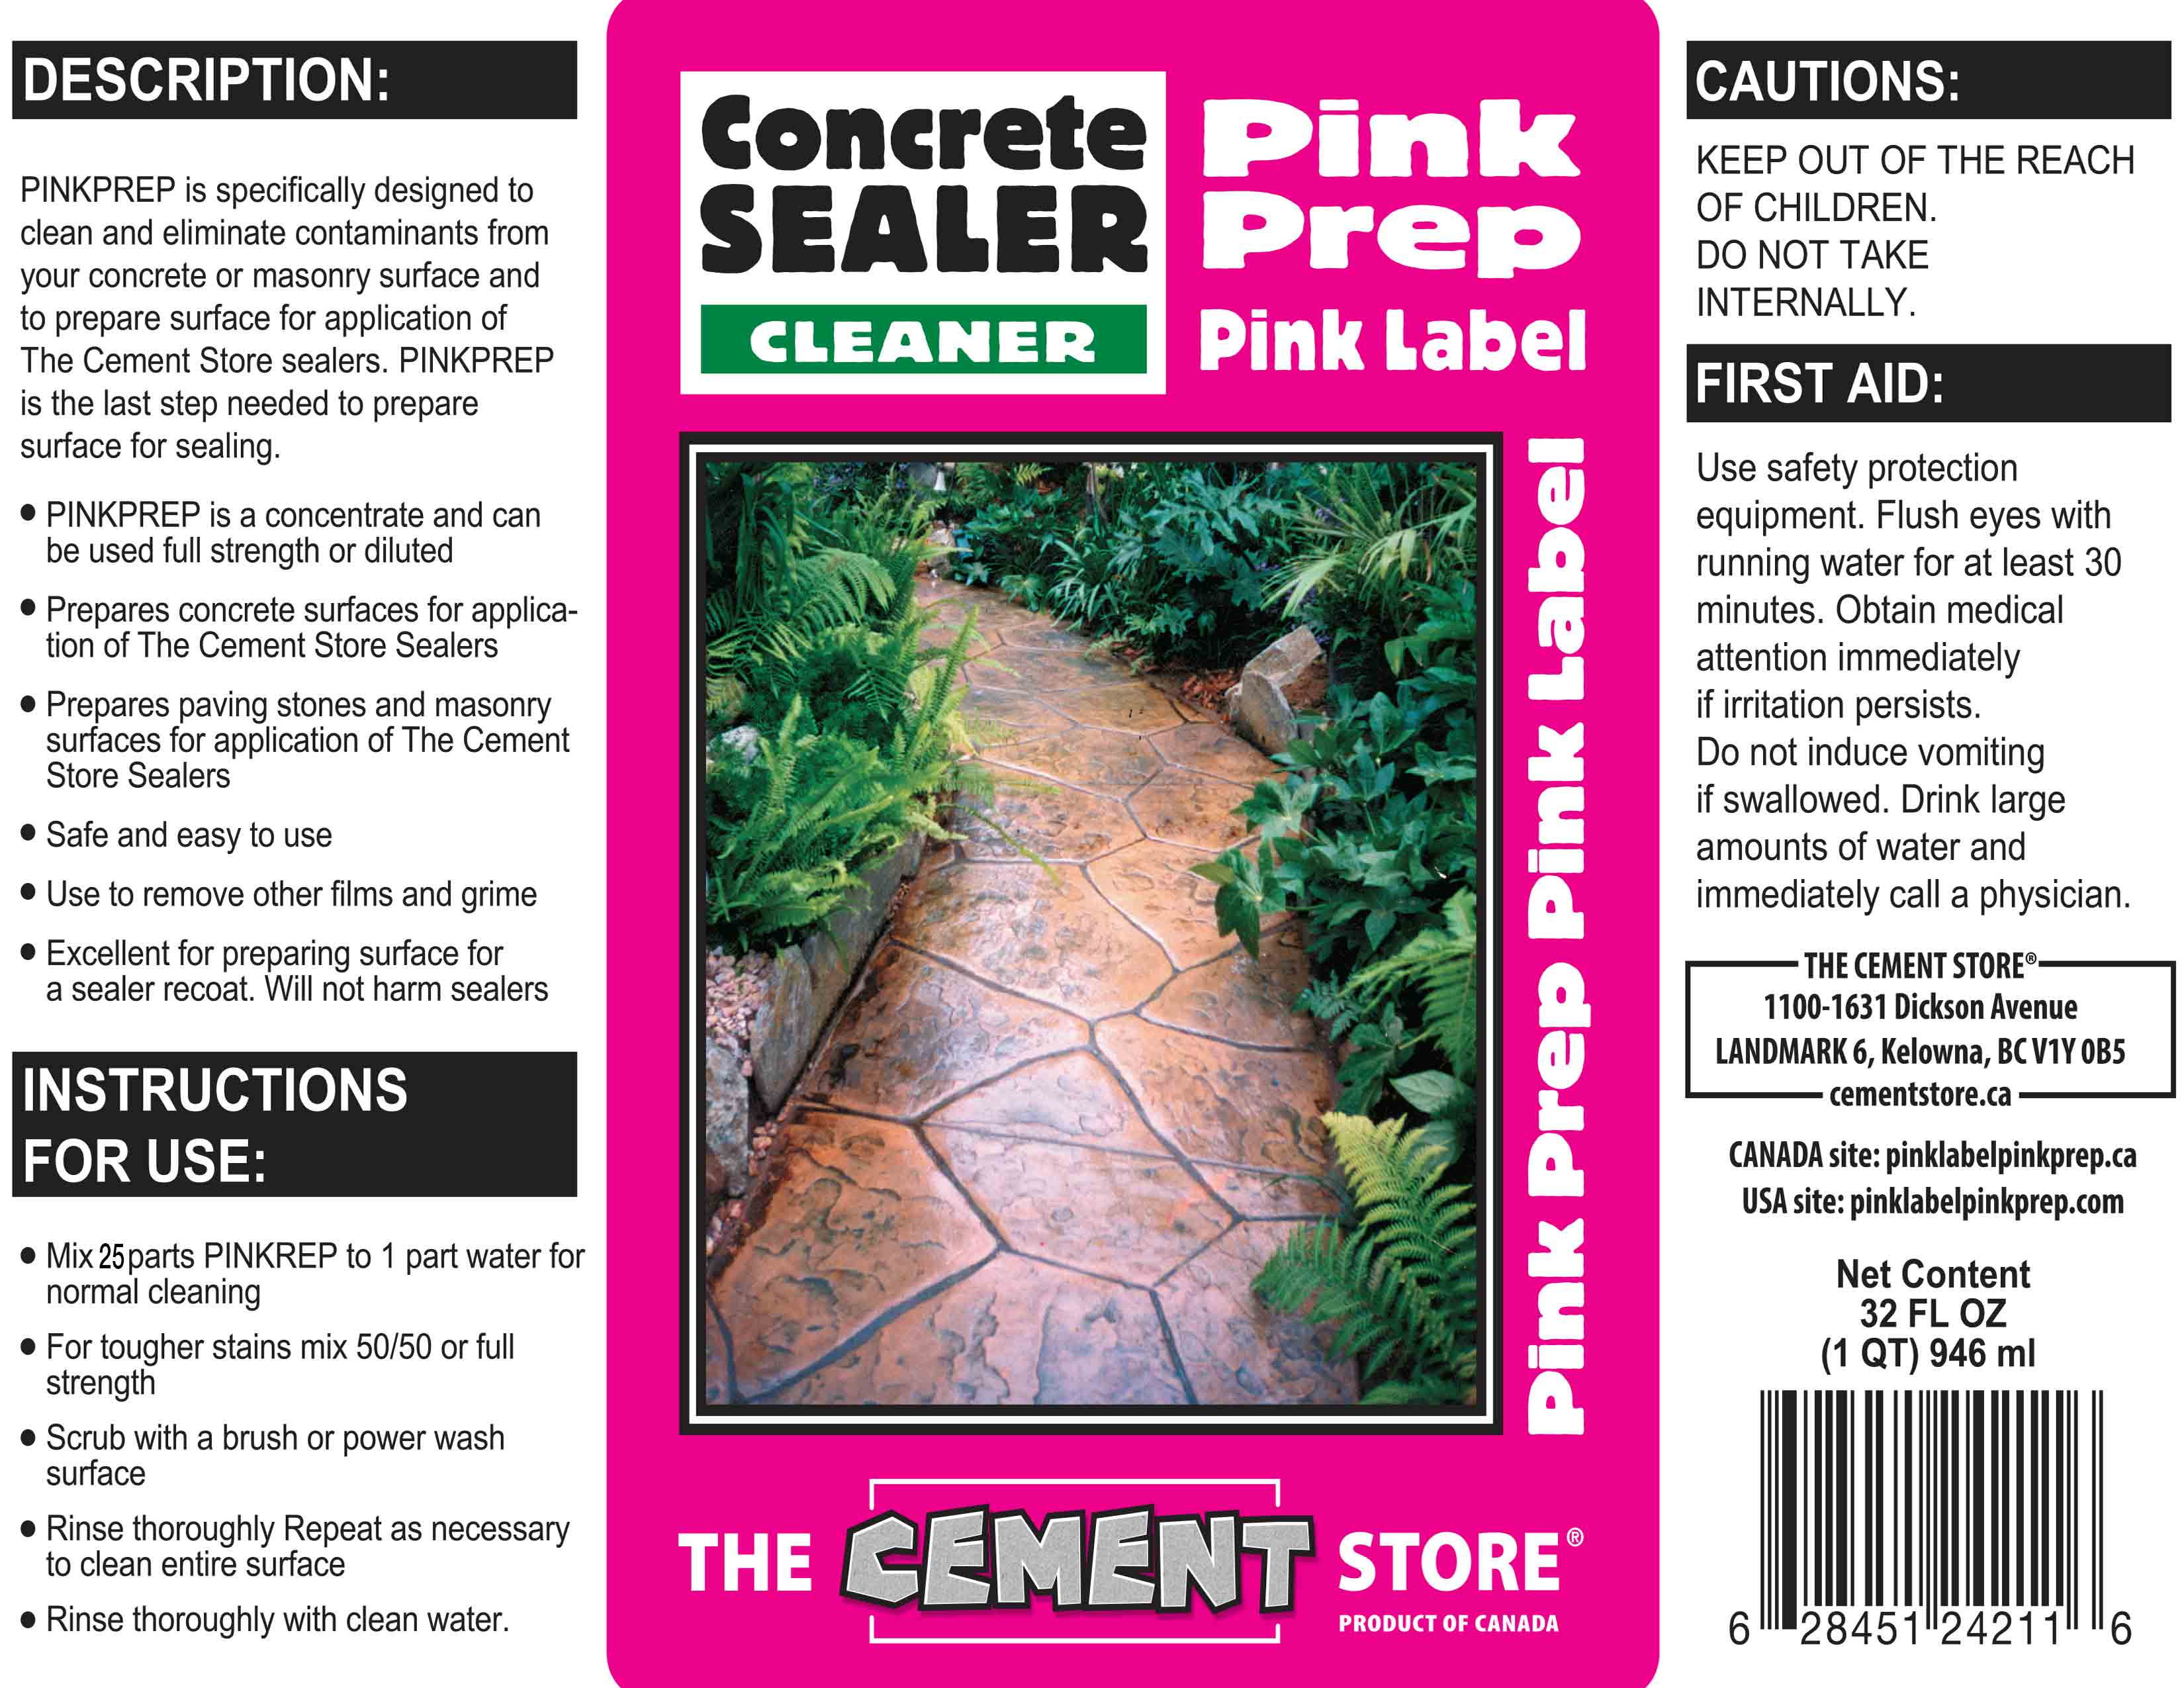 THE CEMENT STORE PINK LABEL PINKPREP APPLICATION TIPS